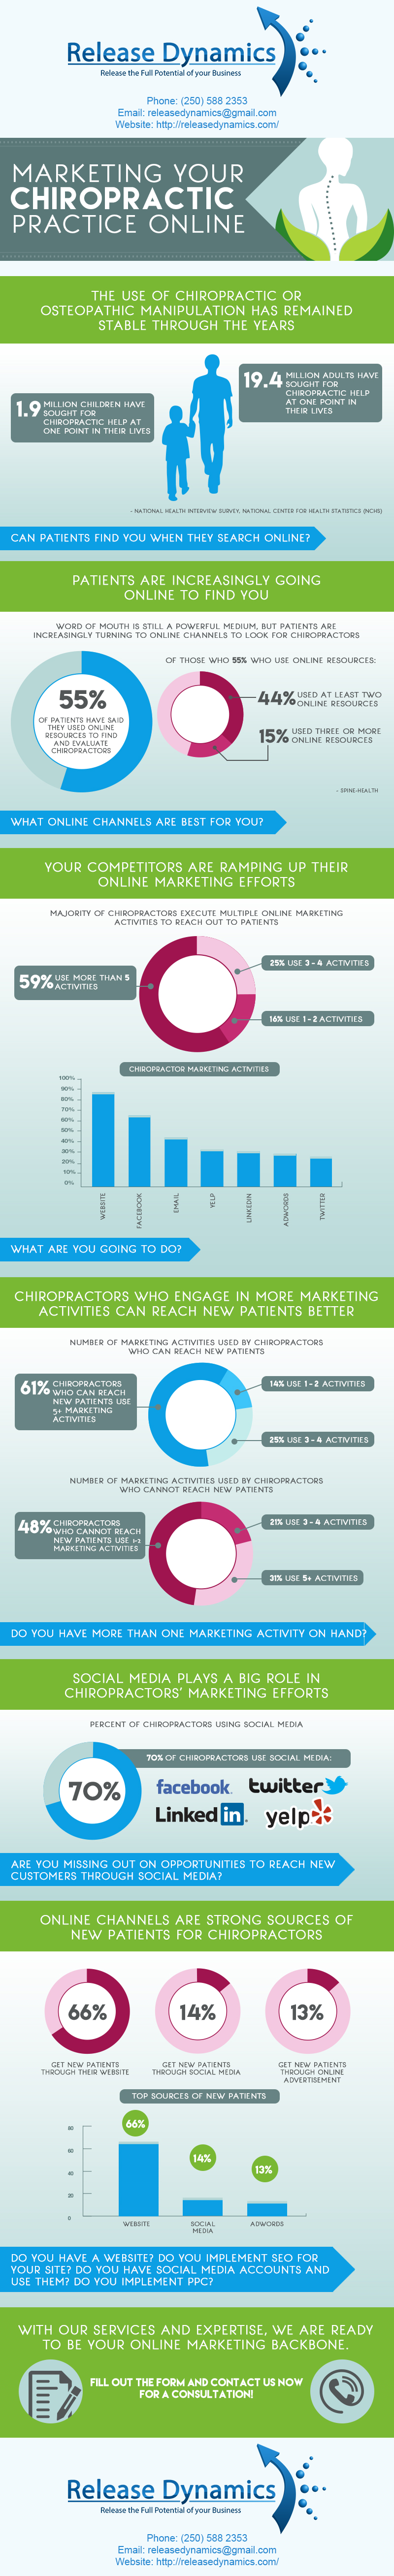 ReleaseDynamics.com-Marketing-for-Chiropractors-Infographic